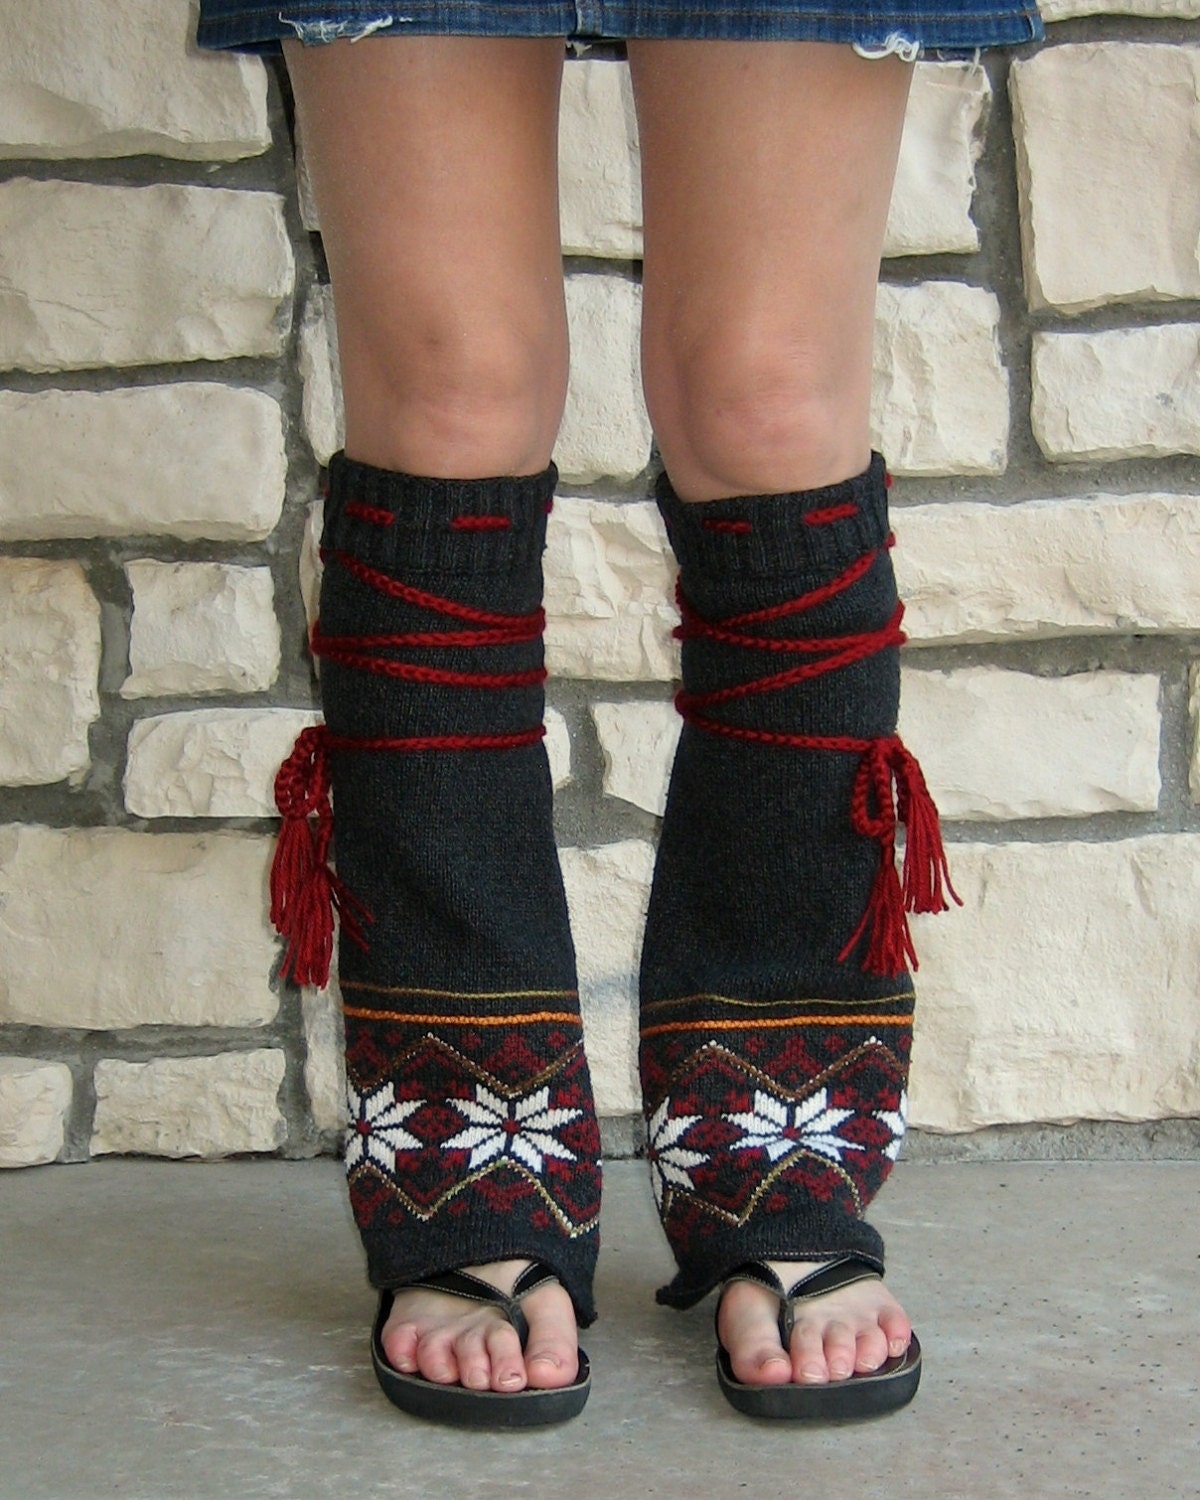 Tribal Flair' Leg Warmers Womans Hippie Clothing by ...